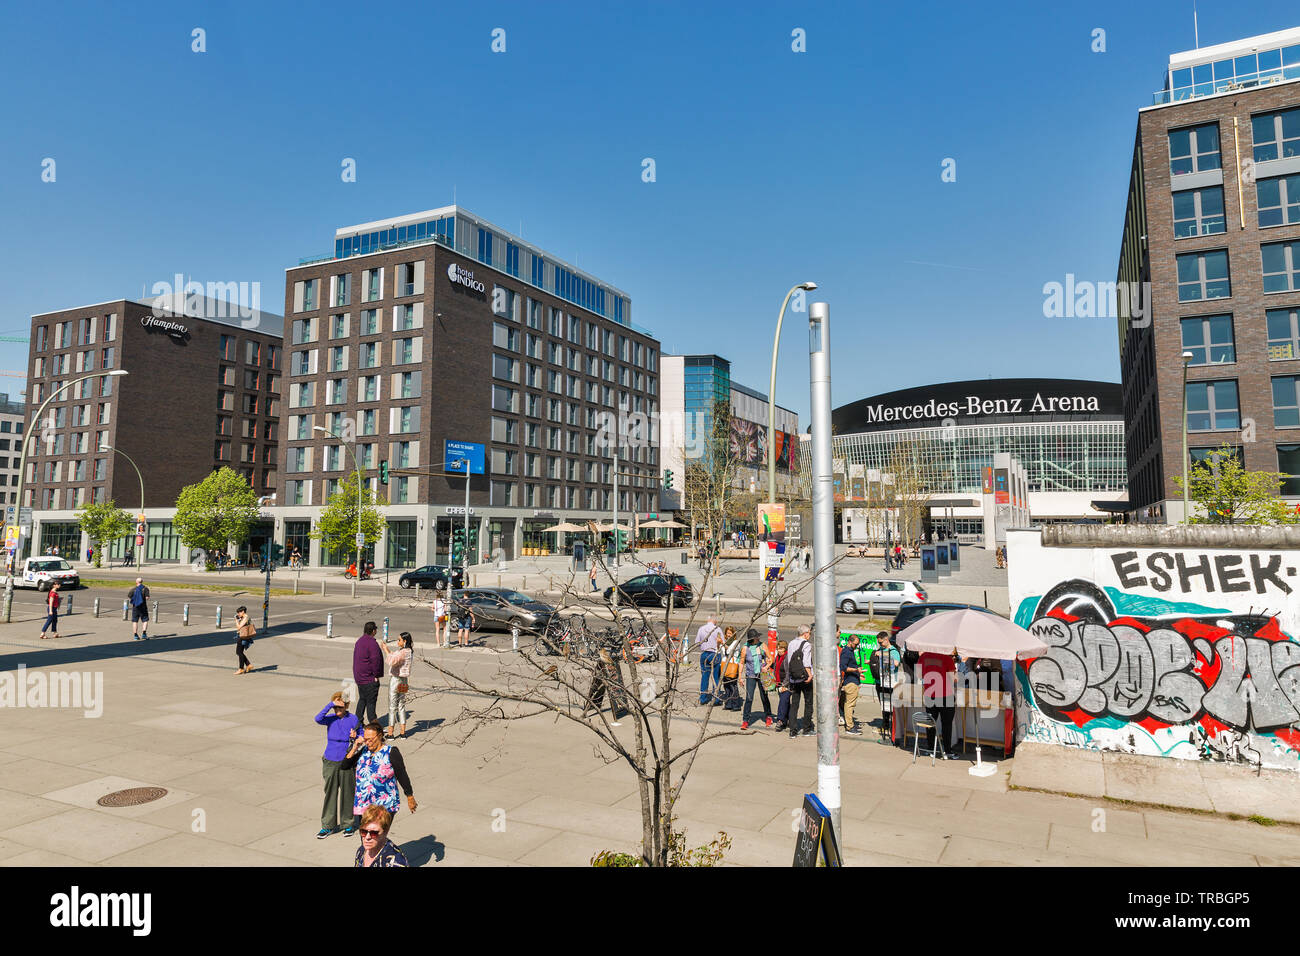 Berlin Germany April 18 2019 People Visit Mercedes Platz In Front Of Mercedes Benz Arena At Sunny Day Berlin Is The Capital And Largest City Of Stock Photo Alamy